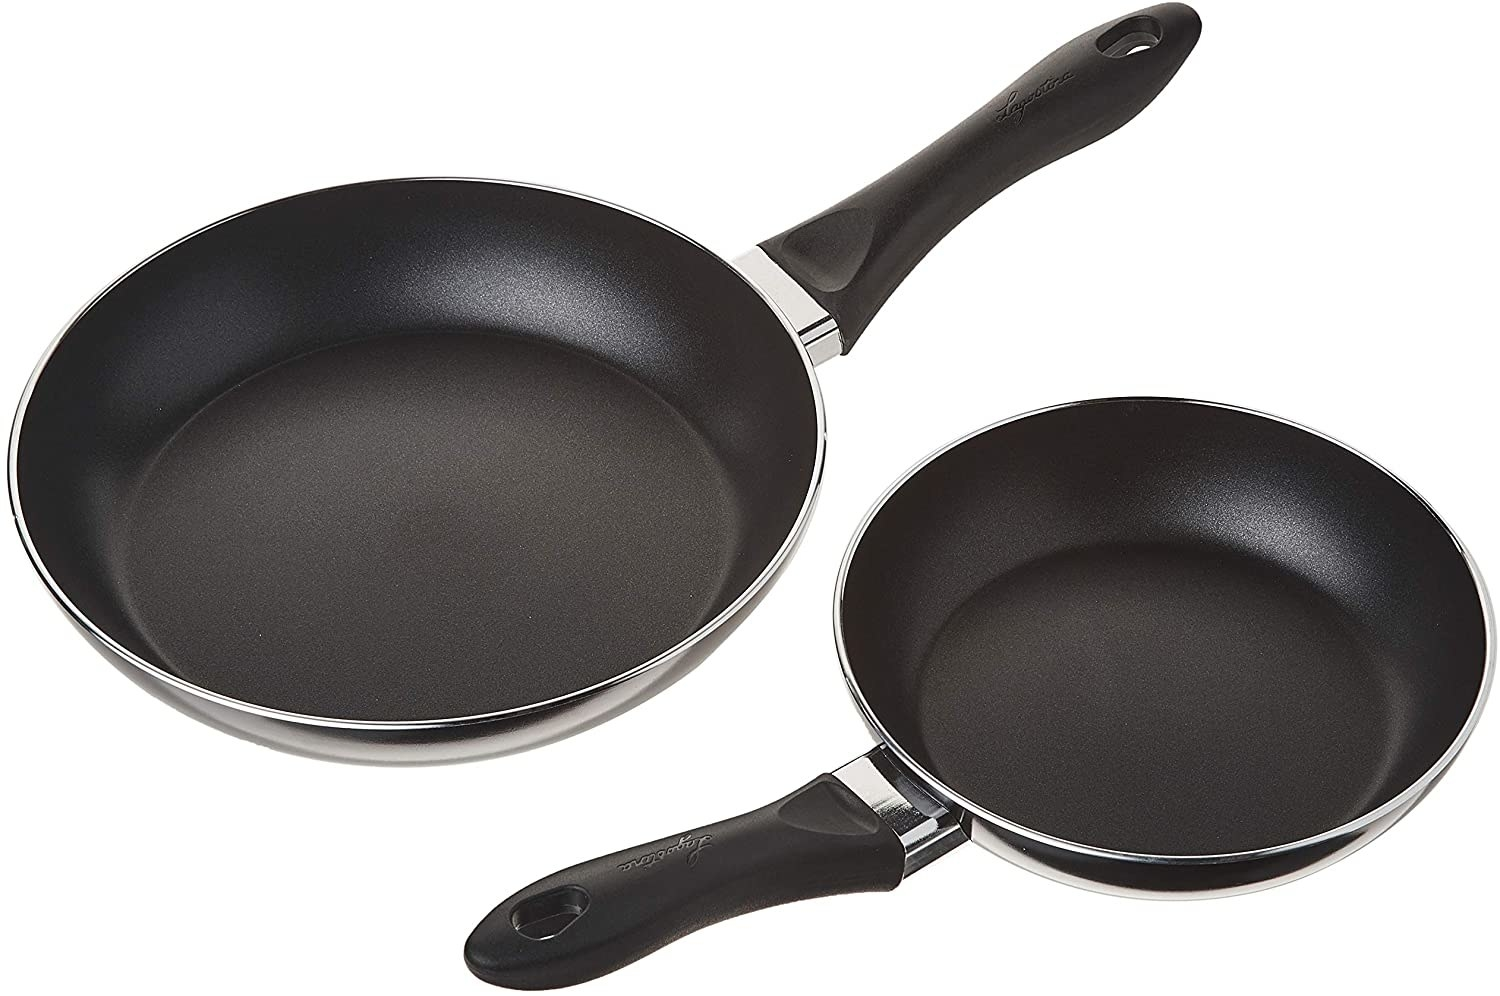 Two non stick frying pans